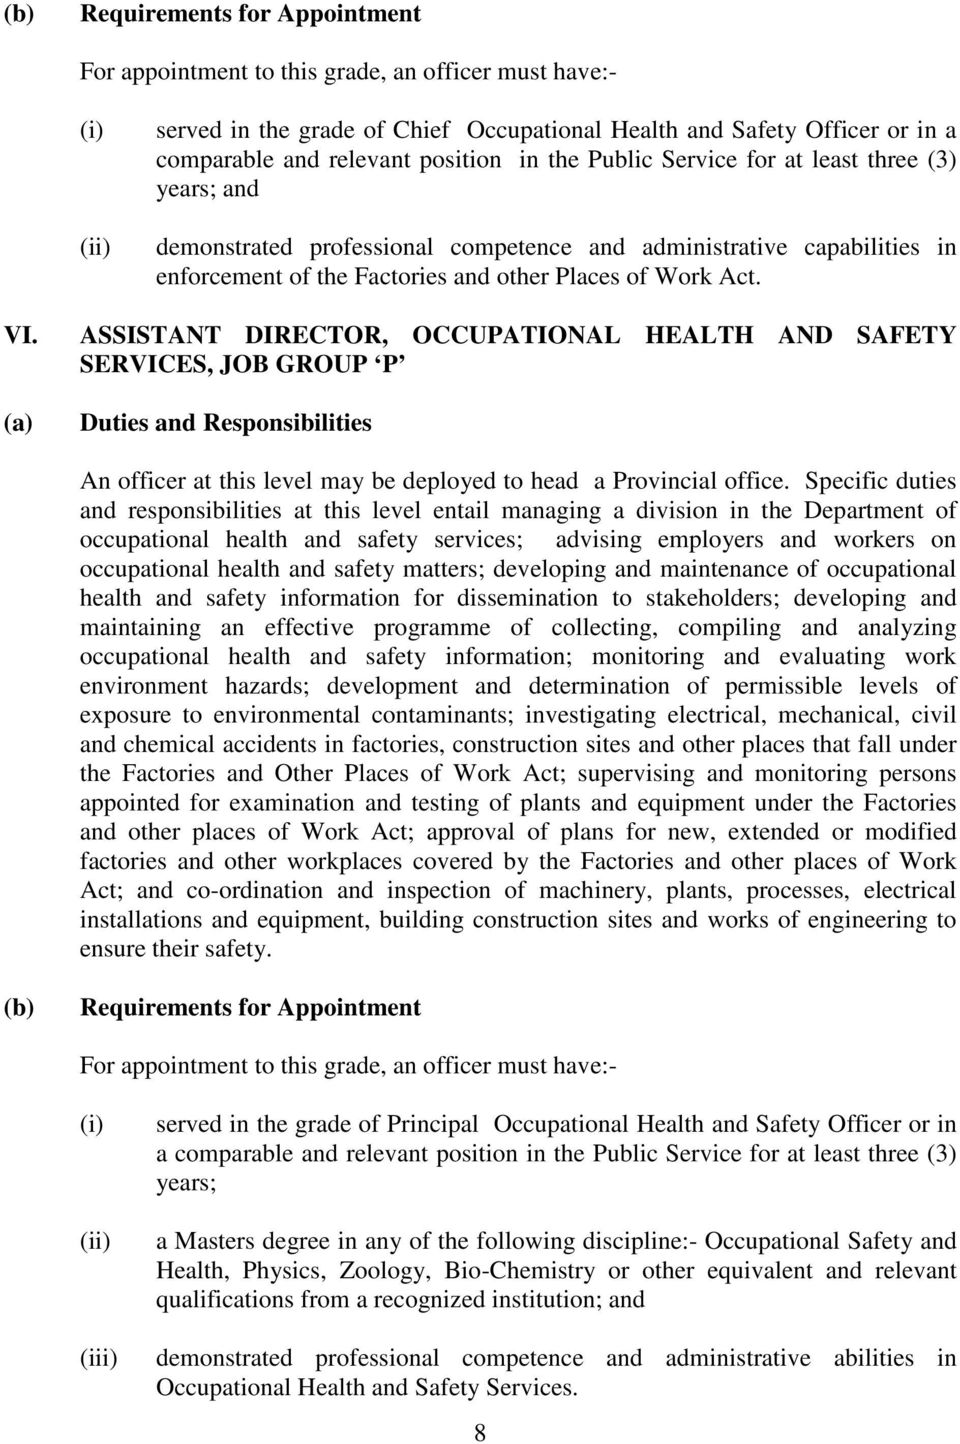 ASSISTANT DIRECTOR, OCCUPATIONAL HEALTH AND SAFETY SERVICES, JOB GROUP P An officer at this level may be deployed to head a Provincial office.